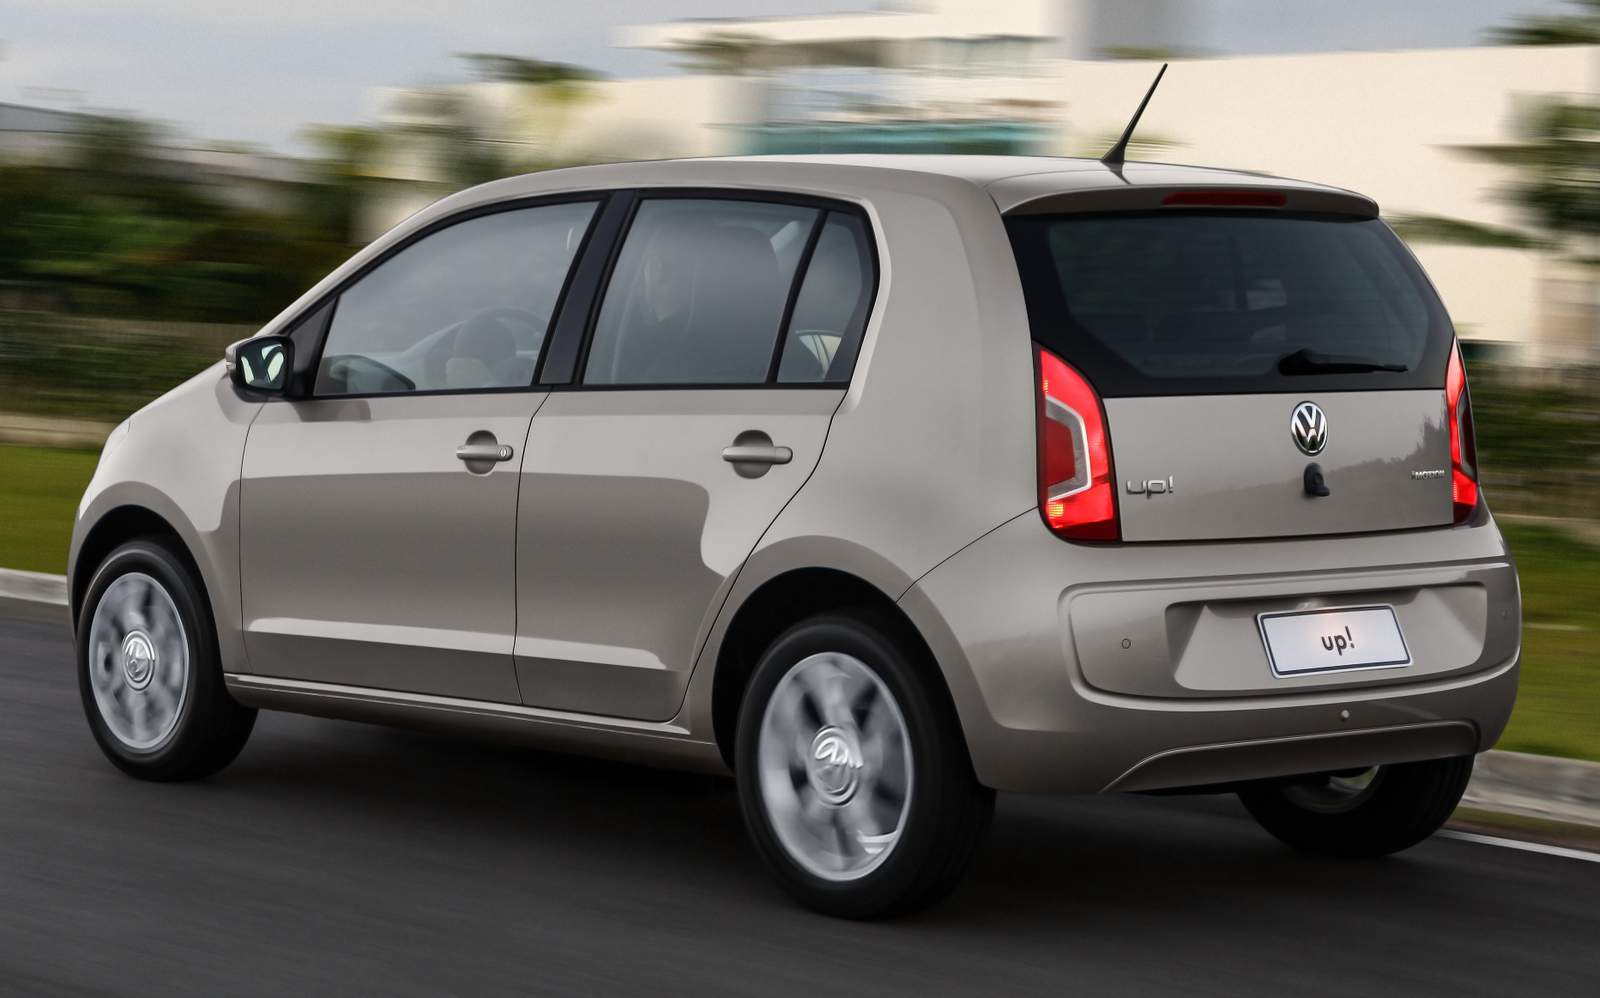 Volkswagen Up! 2016